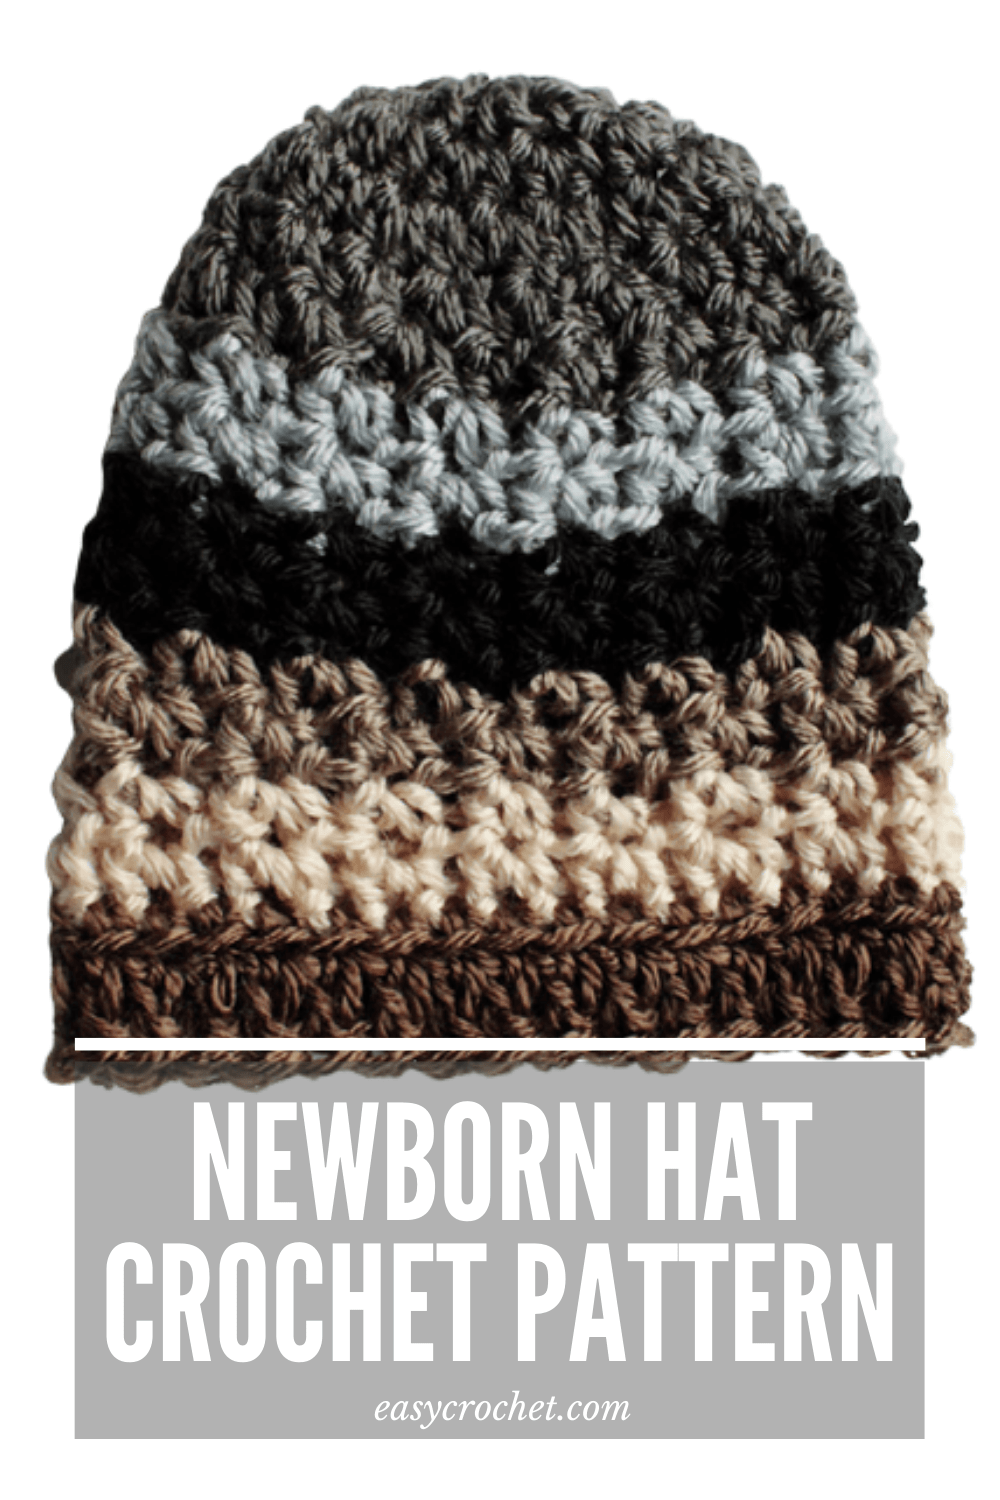 Learn to crochet this simple newborn hat crochet pattern with this free easy crochet pattern from easycrochet.com via @easycrochetcom